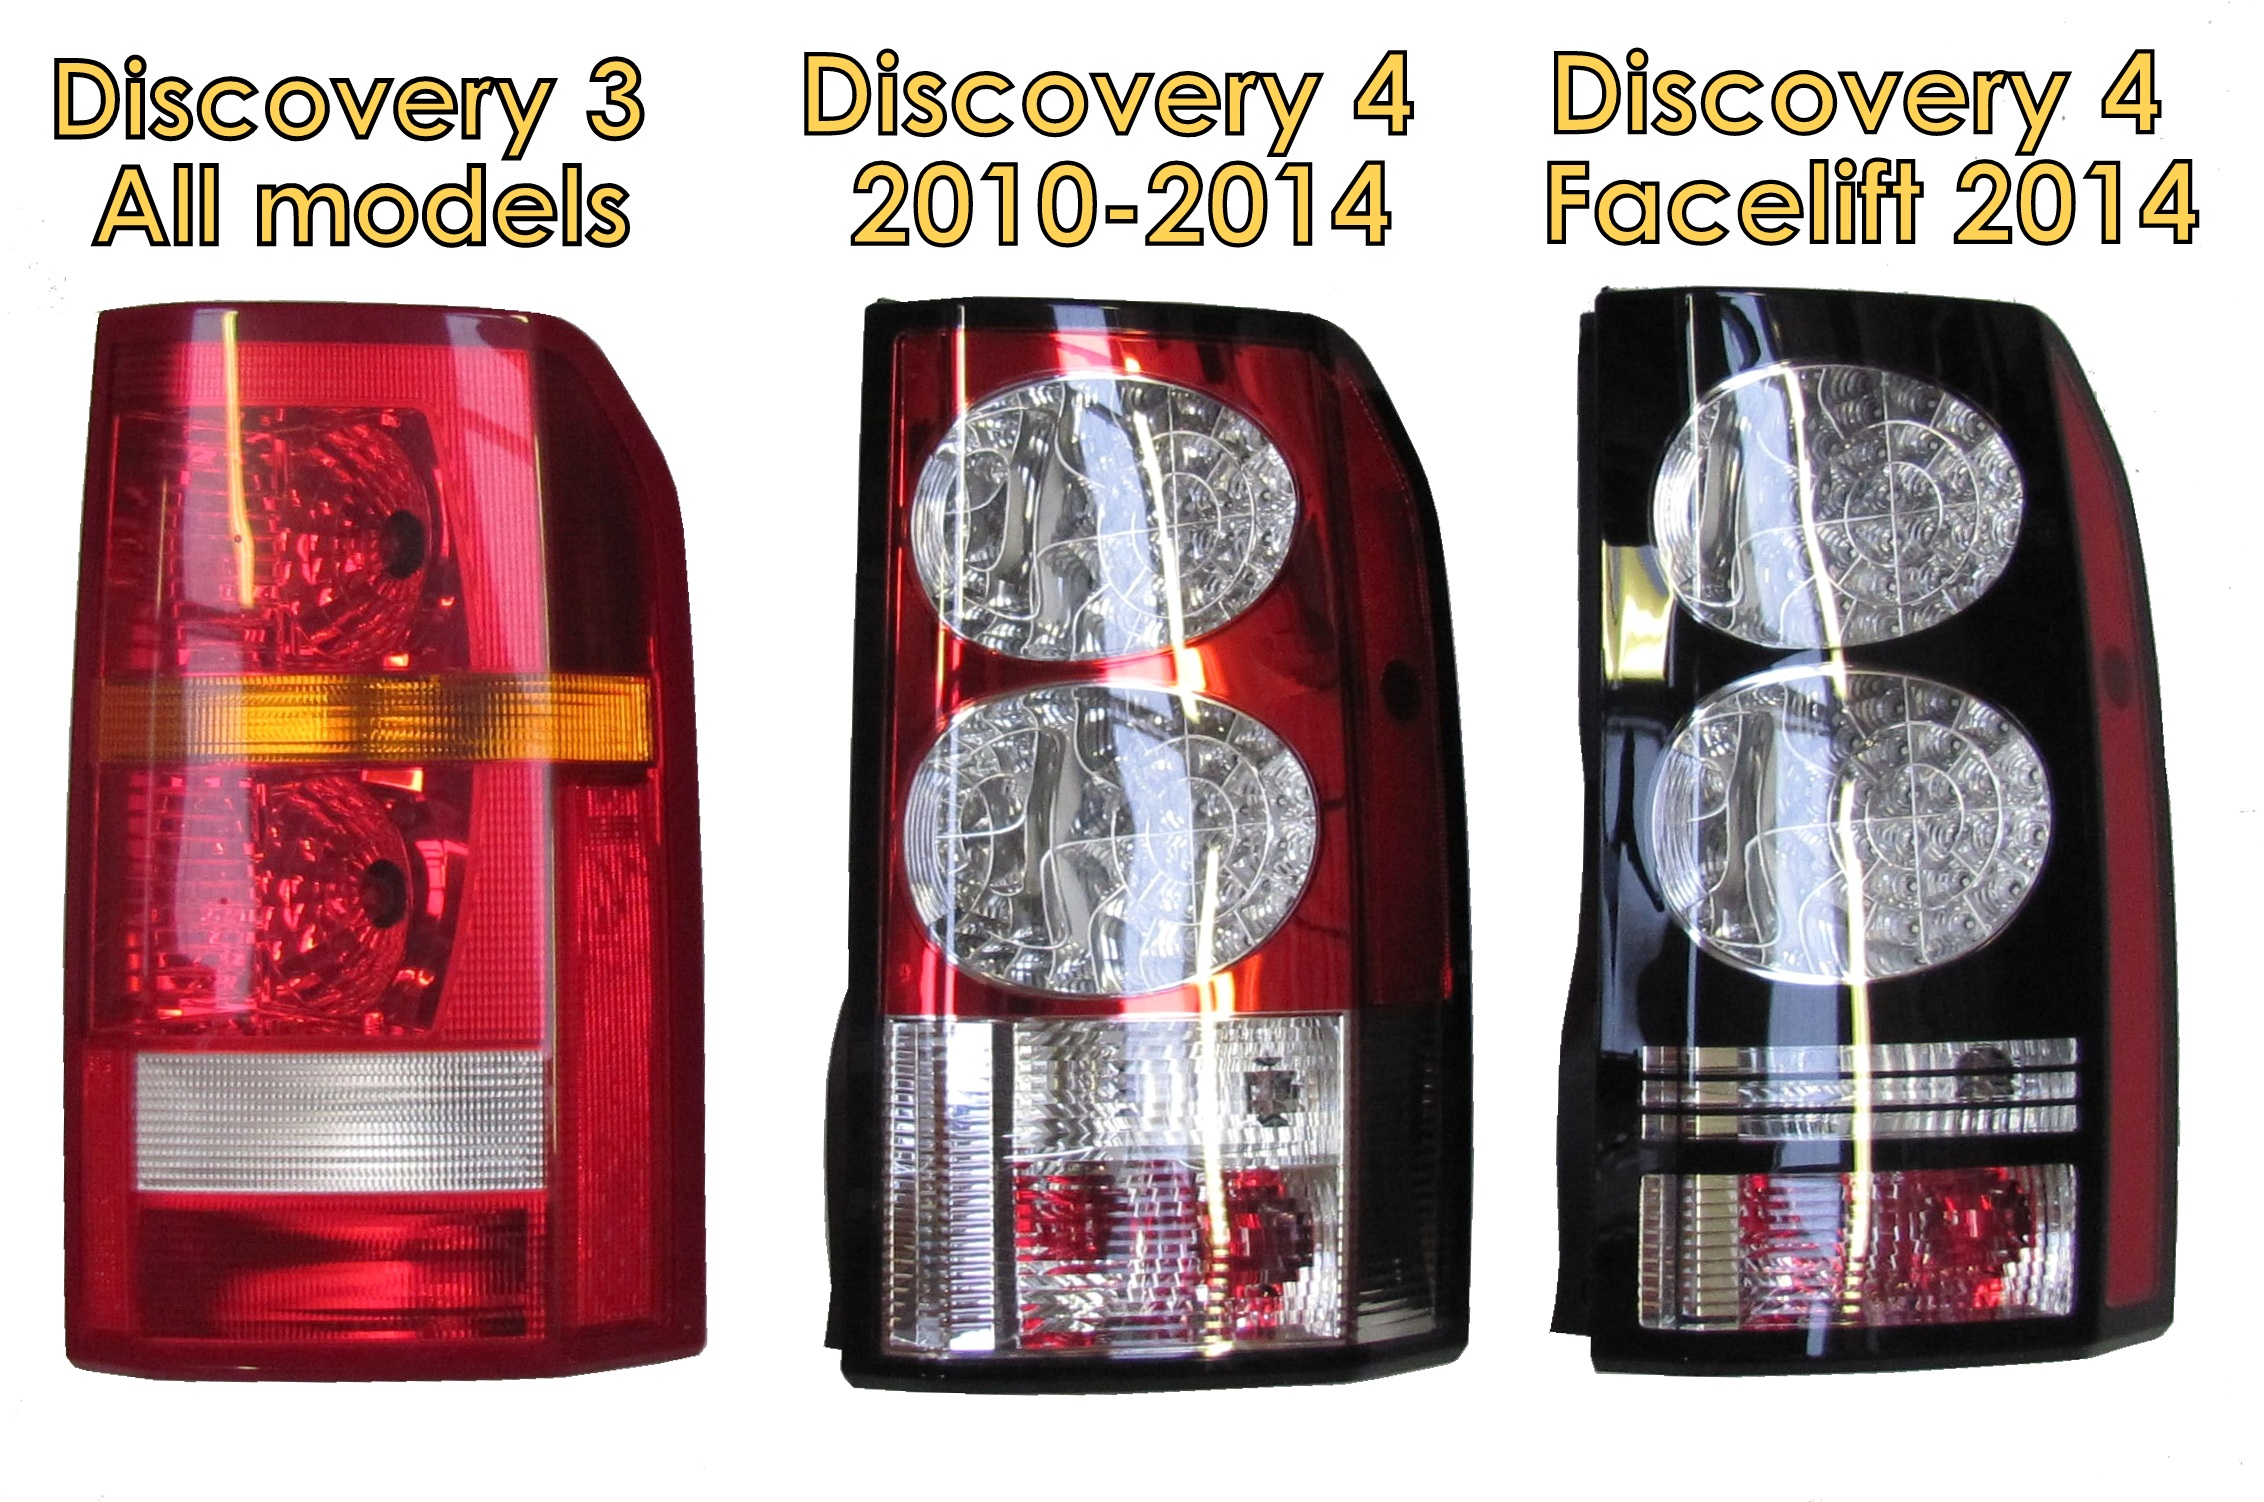 Land Rover Discovery 4 2014 Black Led Rear Light Tail Lamp